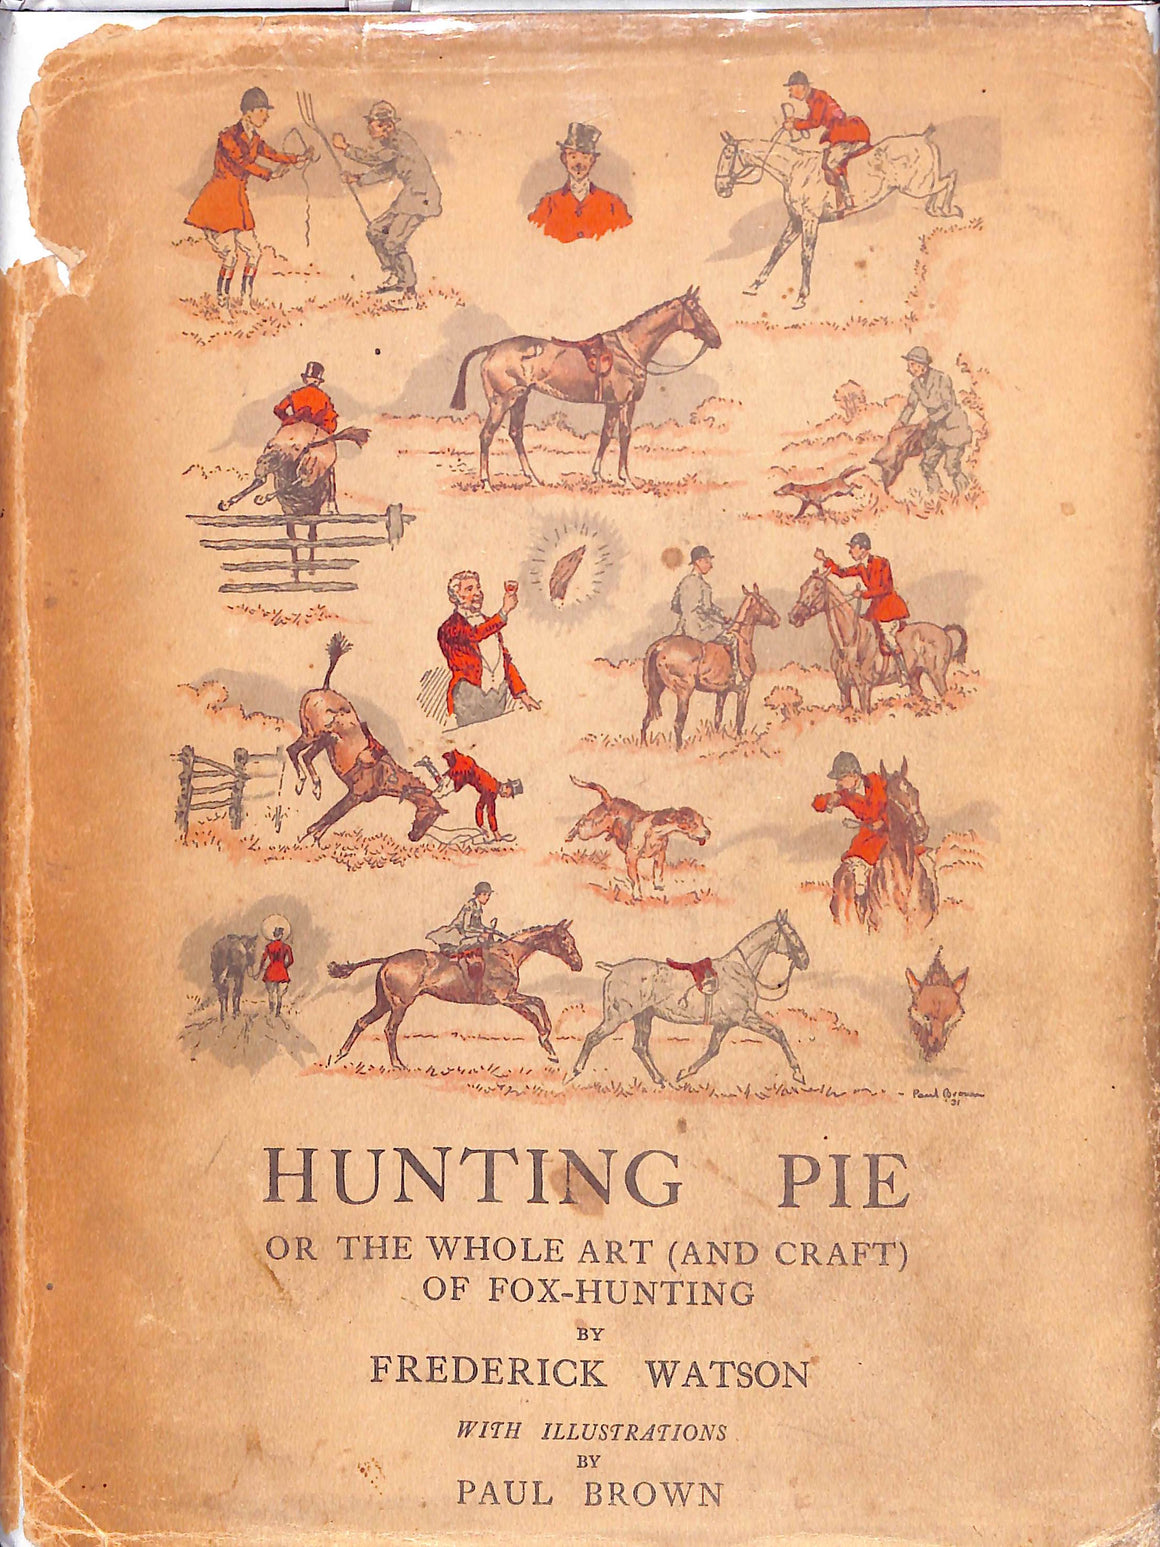 'Hunting Pie: or The Whole (and Craft) of Fox-Hunting' 1931 by Frederick Watson